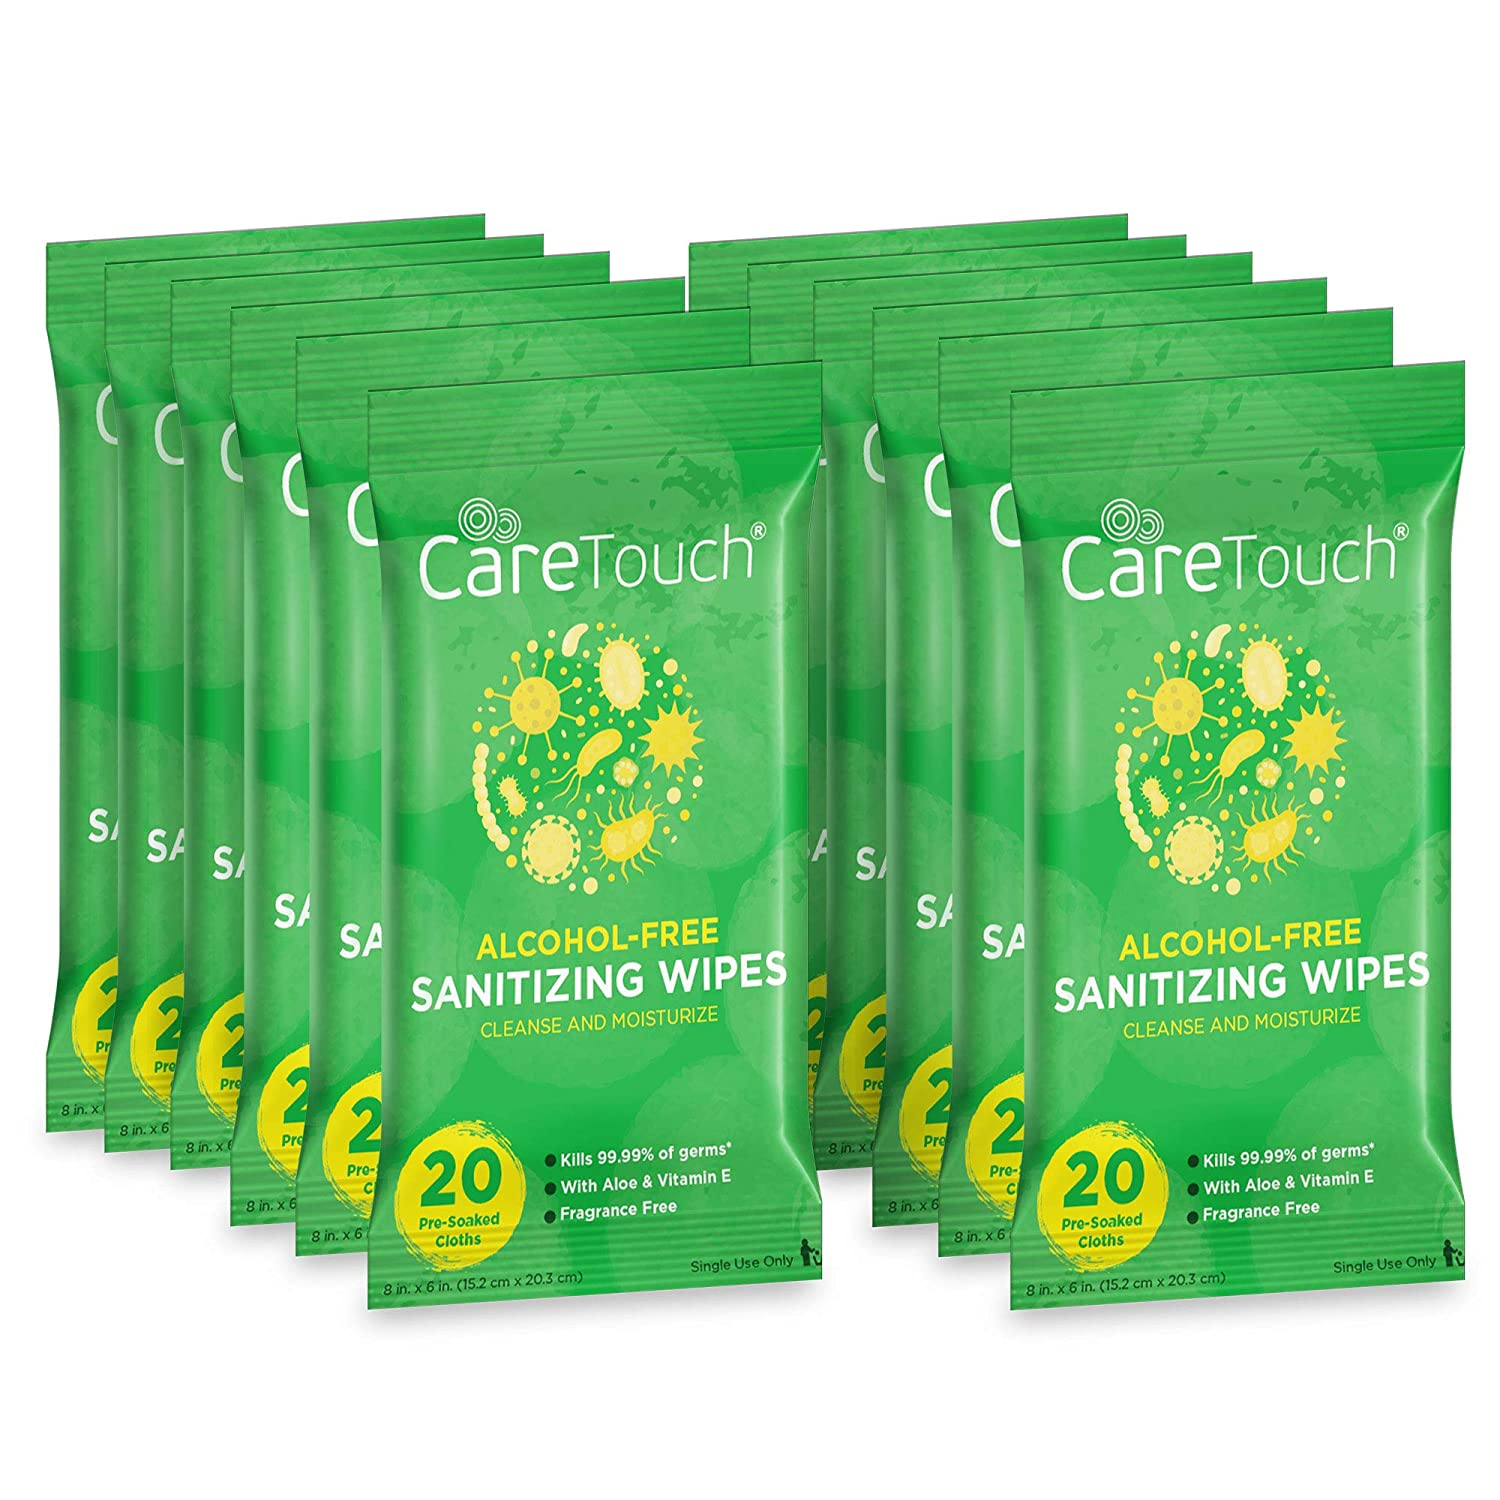 Care Touch Alcohol-Free Hand Sanitizing Wipes (12 Pouches) | 240 Antibacterial Moisturizing Sanitizing Wipes with Vitamin E + Aloe Vera for Babies and Adults | Made in the USA